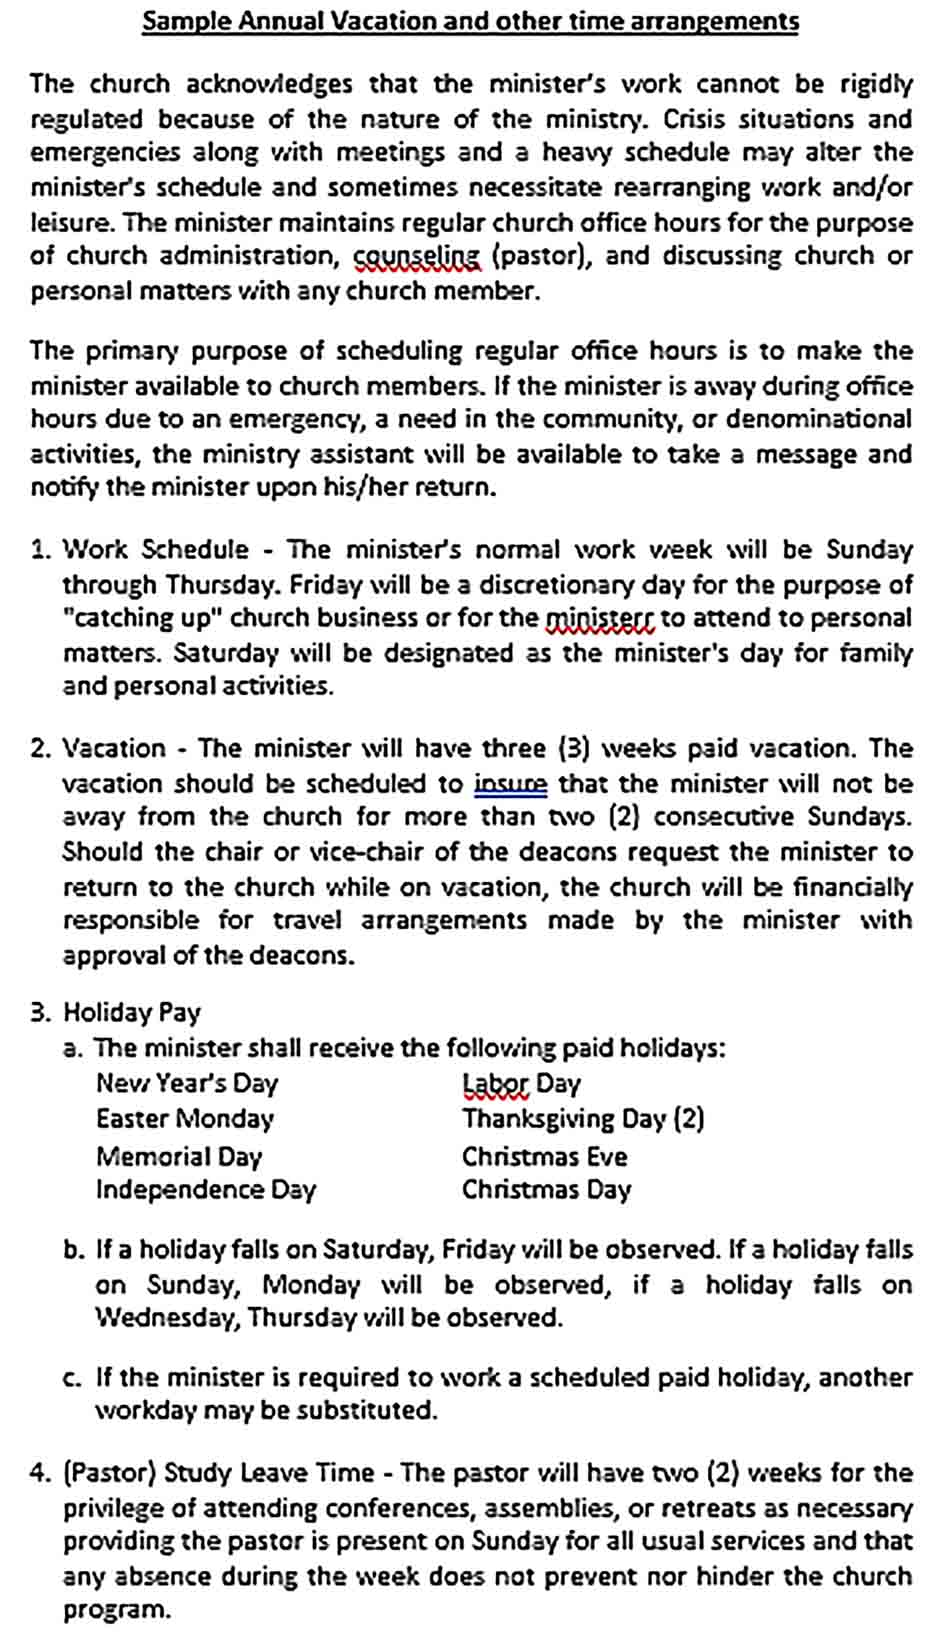 Sample Pastor Compensation and Vacation Guidelines